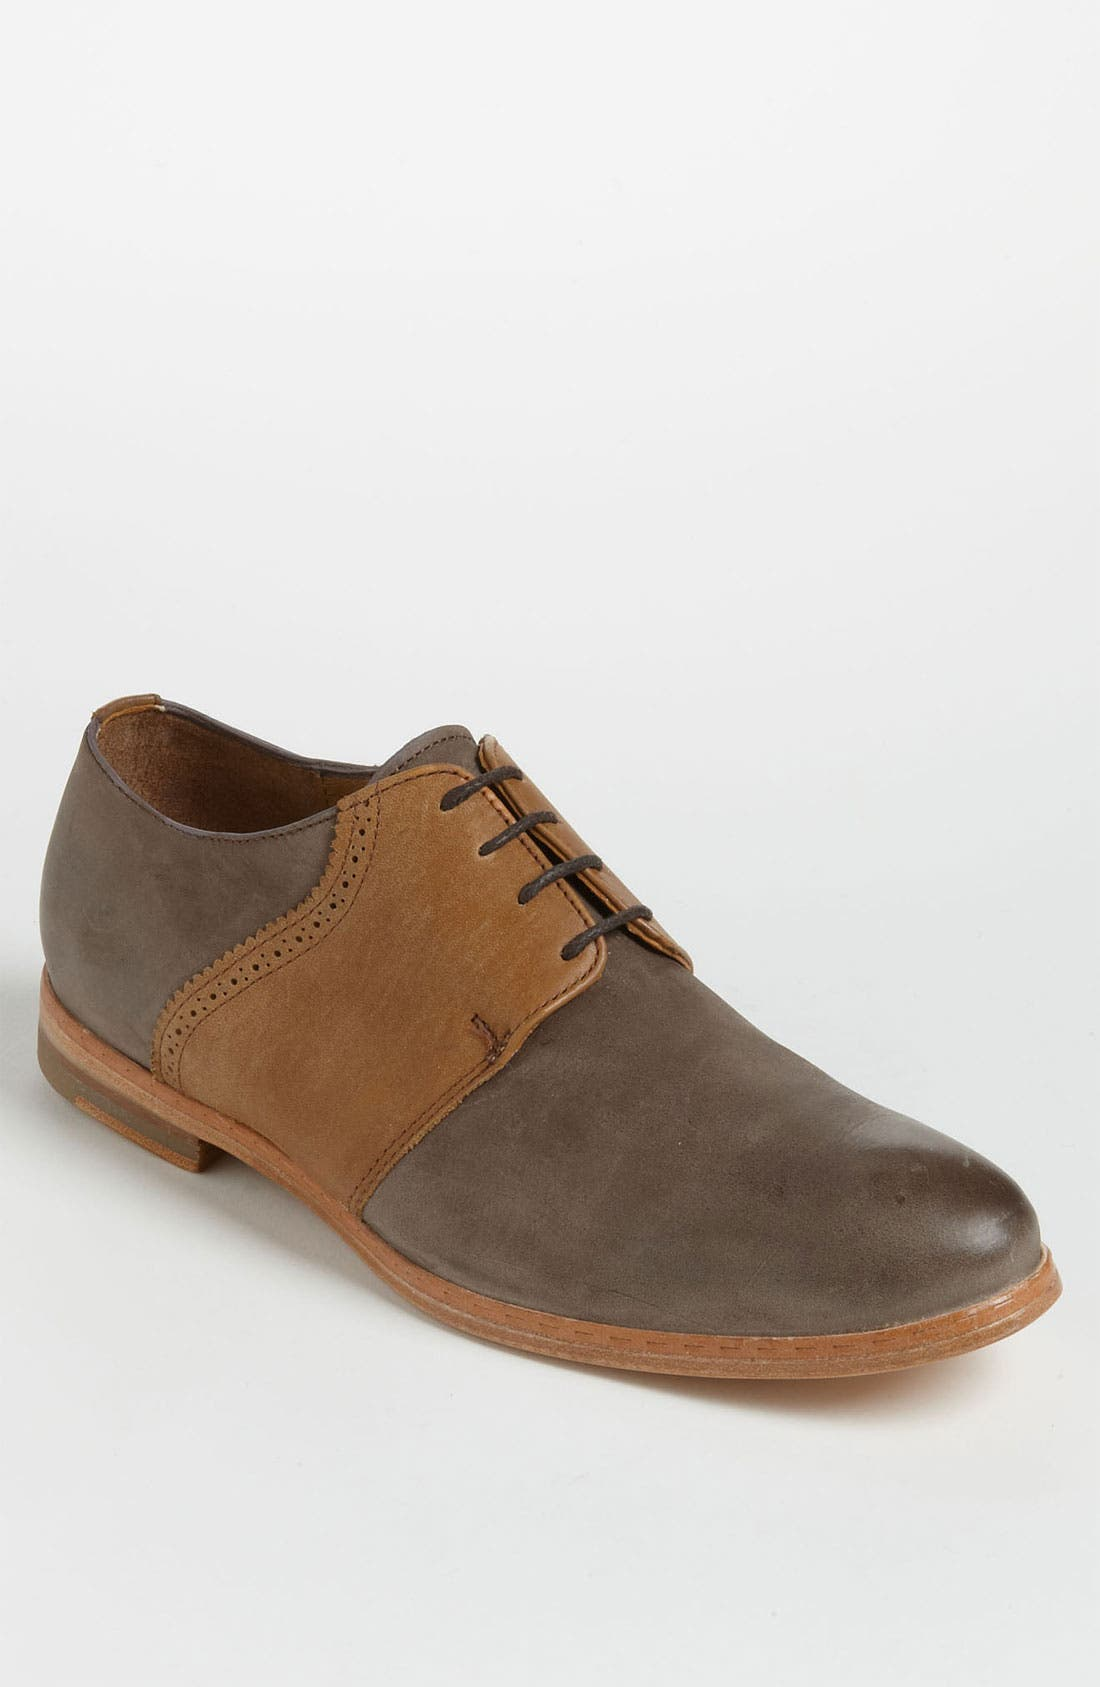 Main Image - J.D. Fisk 'Mosimo' Saddle Shoe